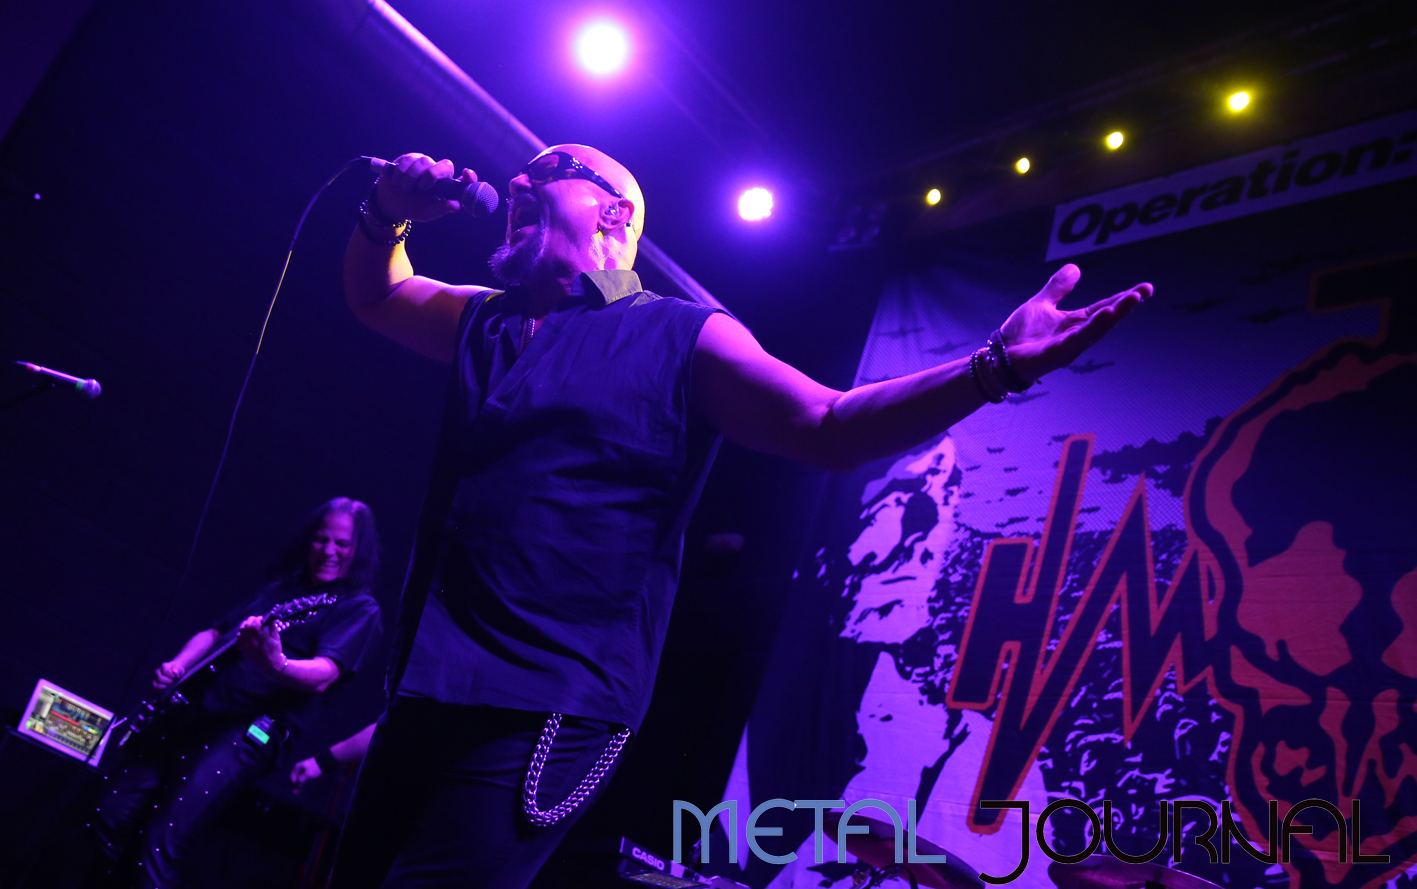 geoff tate operation; mindcrime metal journal pic 2